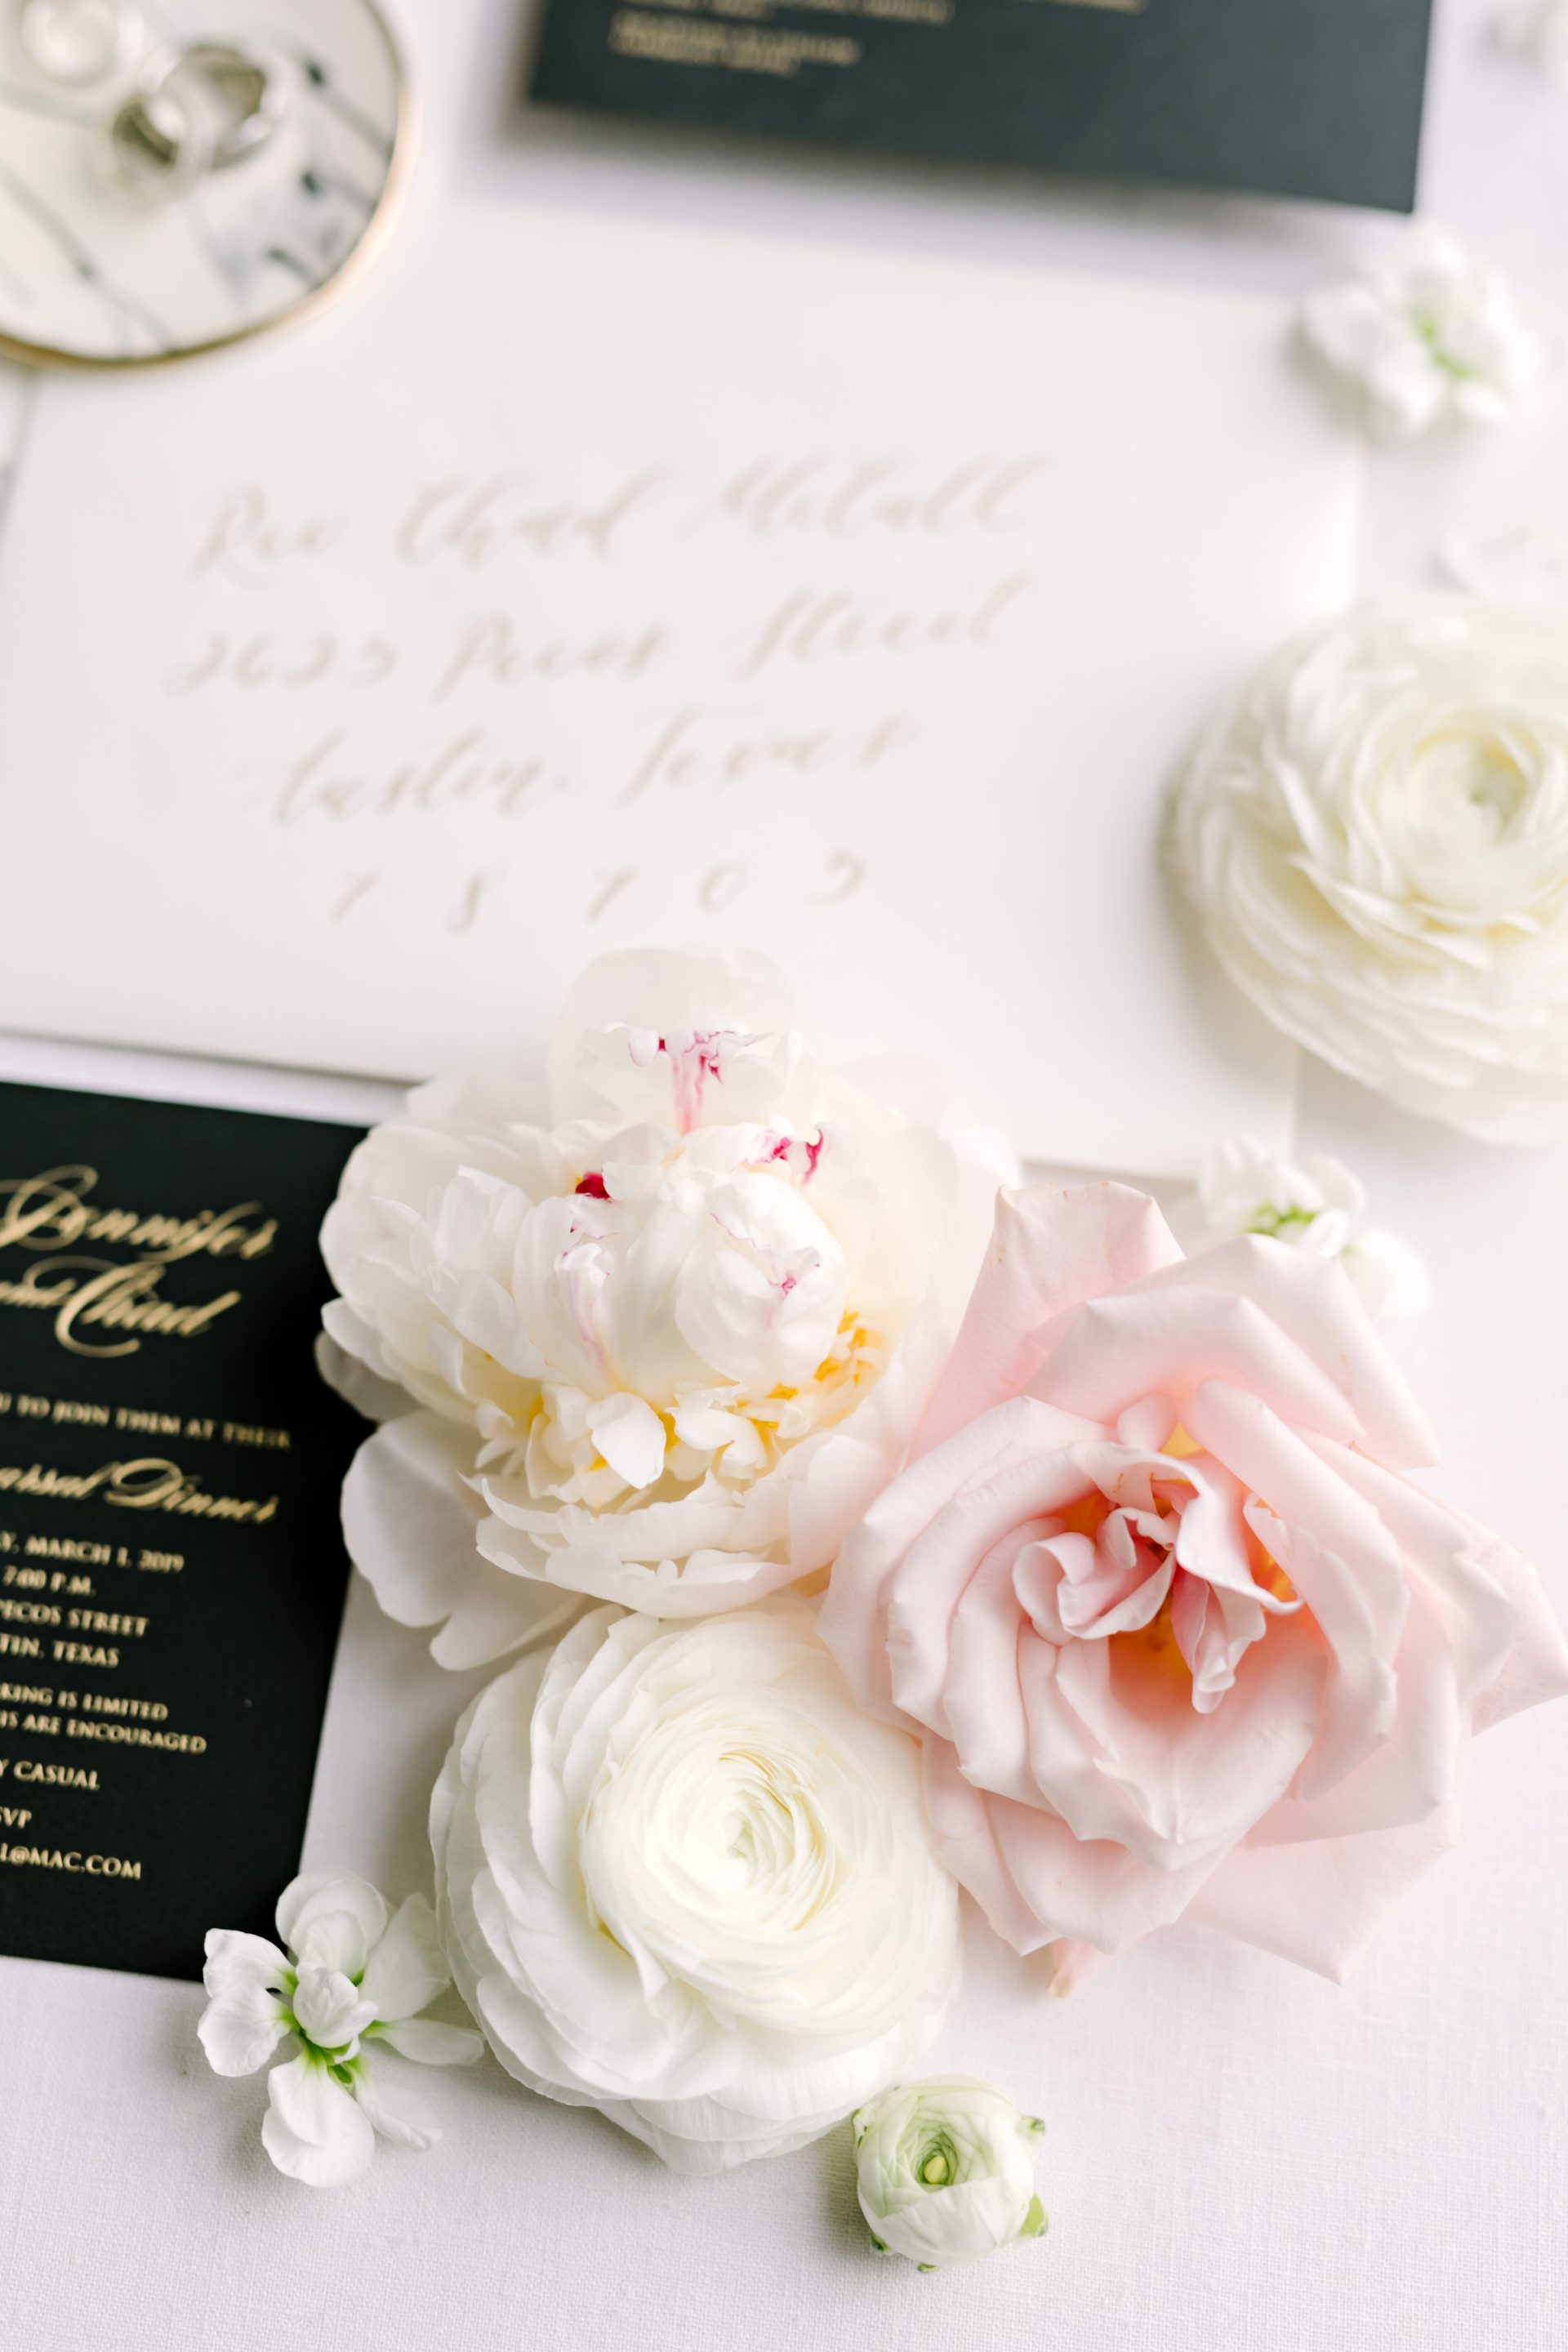 pink and white flowers resting next to a wedding invitation